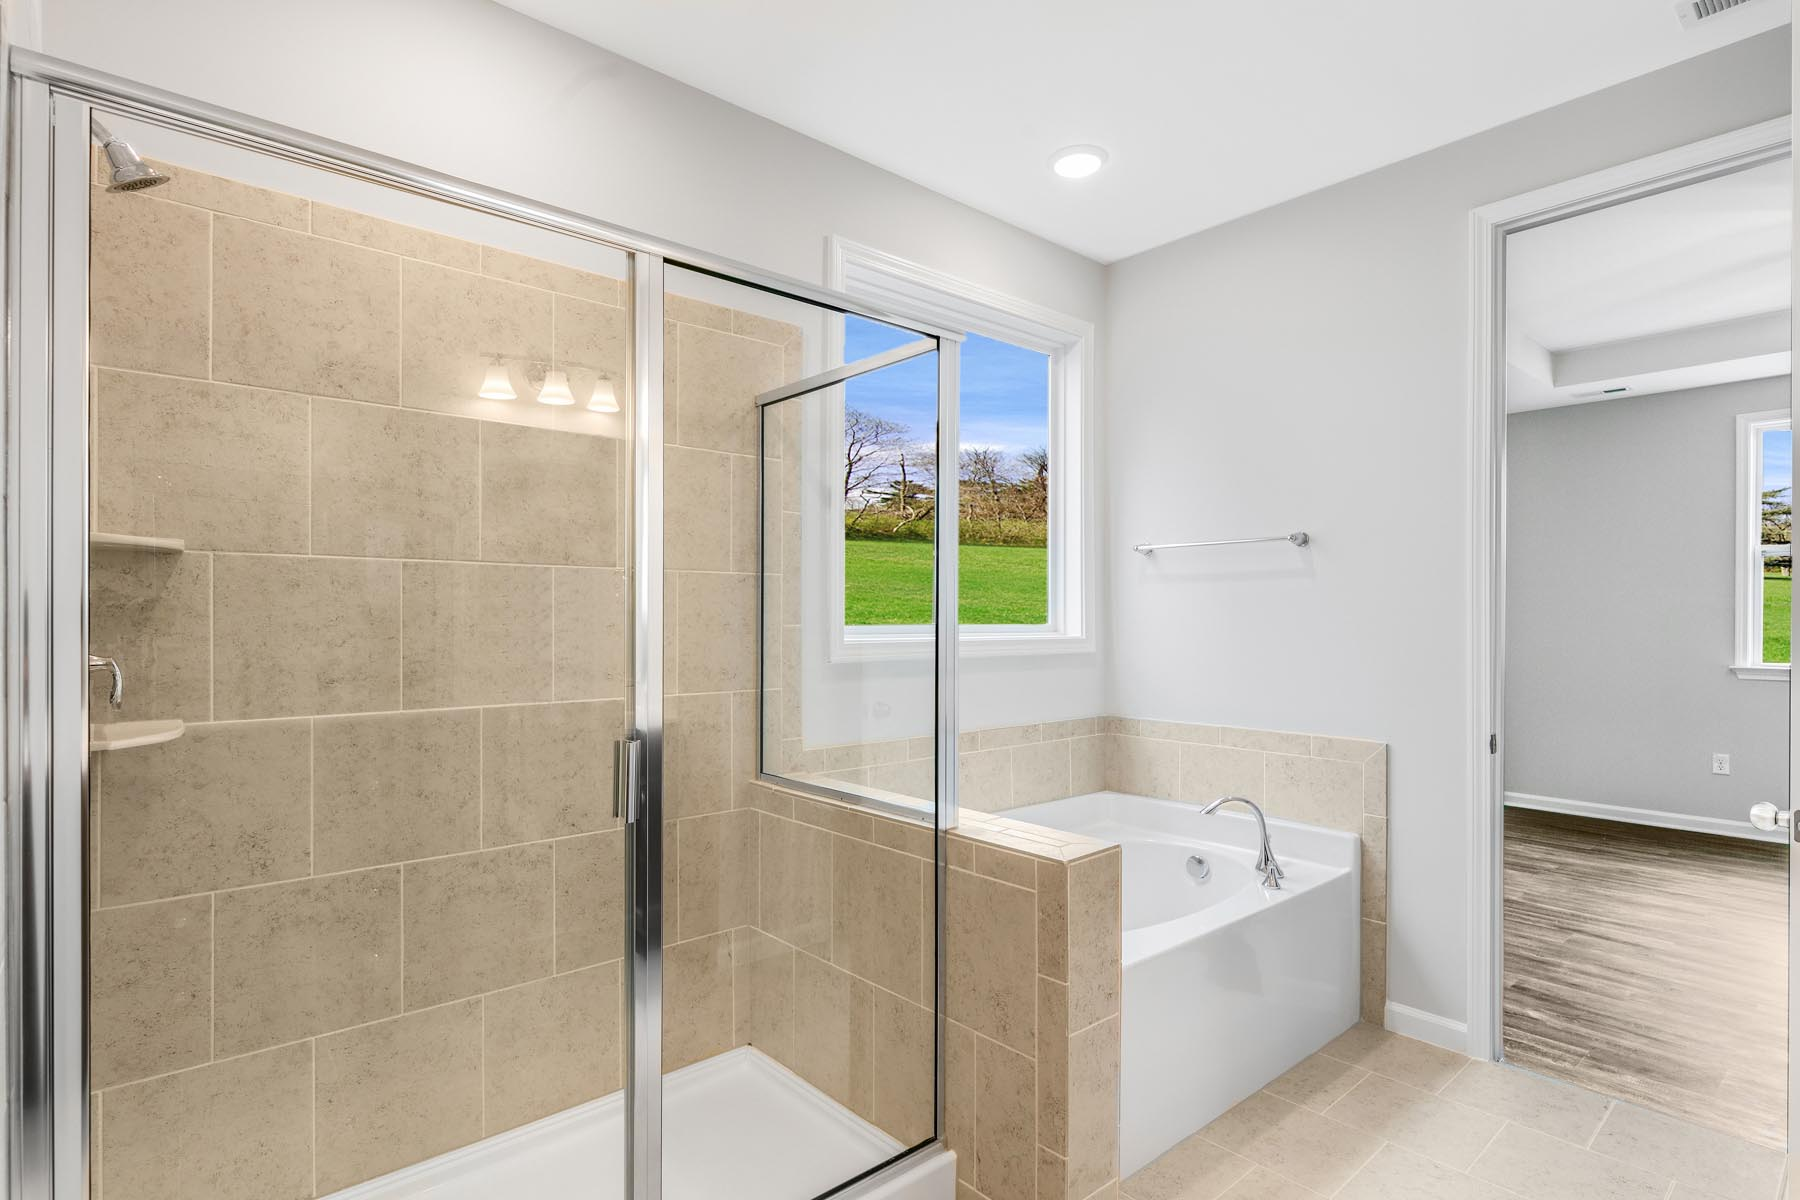 Pierce Plan Bathroom_Master Bath at Bent Tree in Fuquay-Varina North Carolina by Mattamy Homes